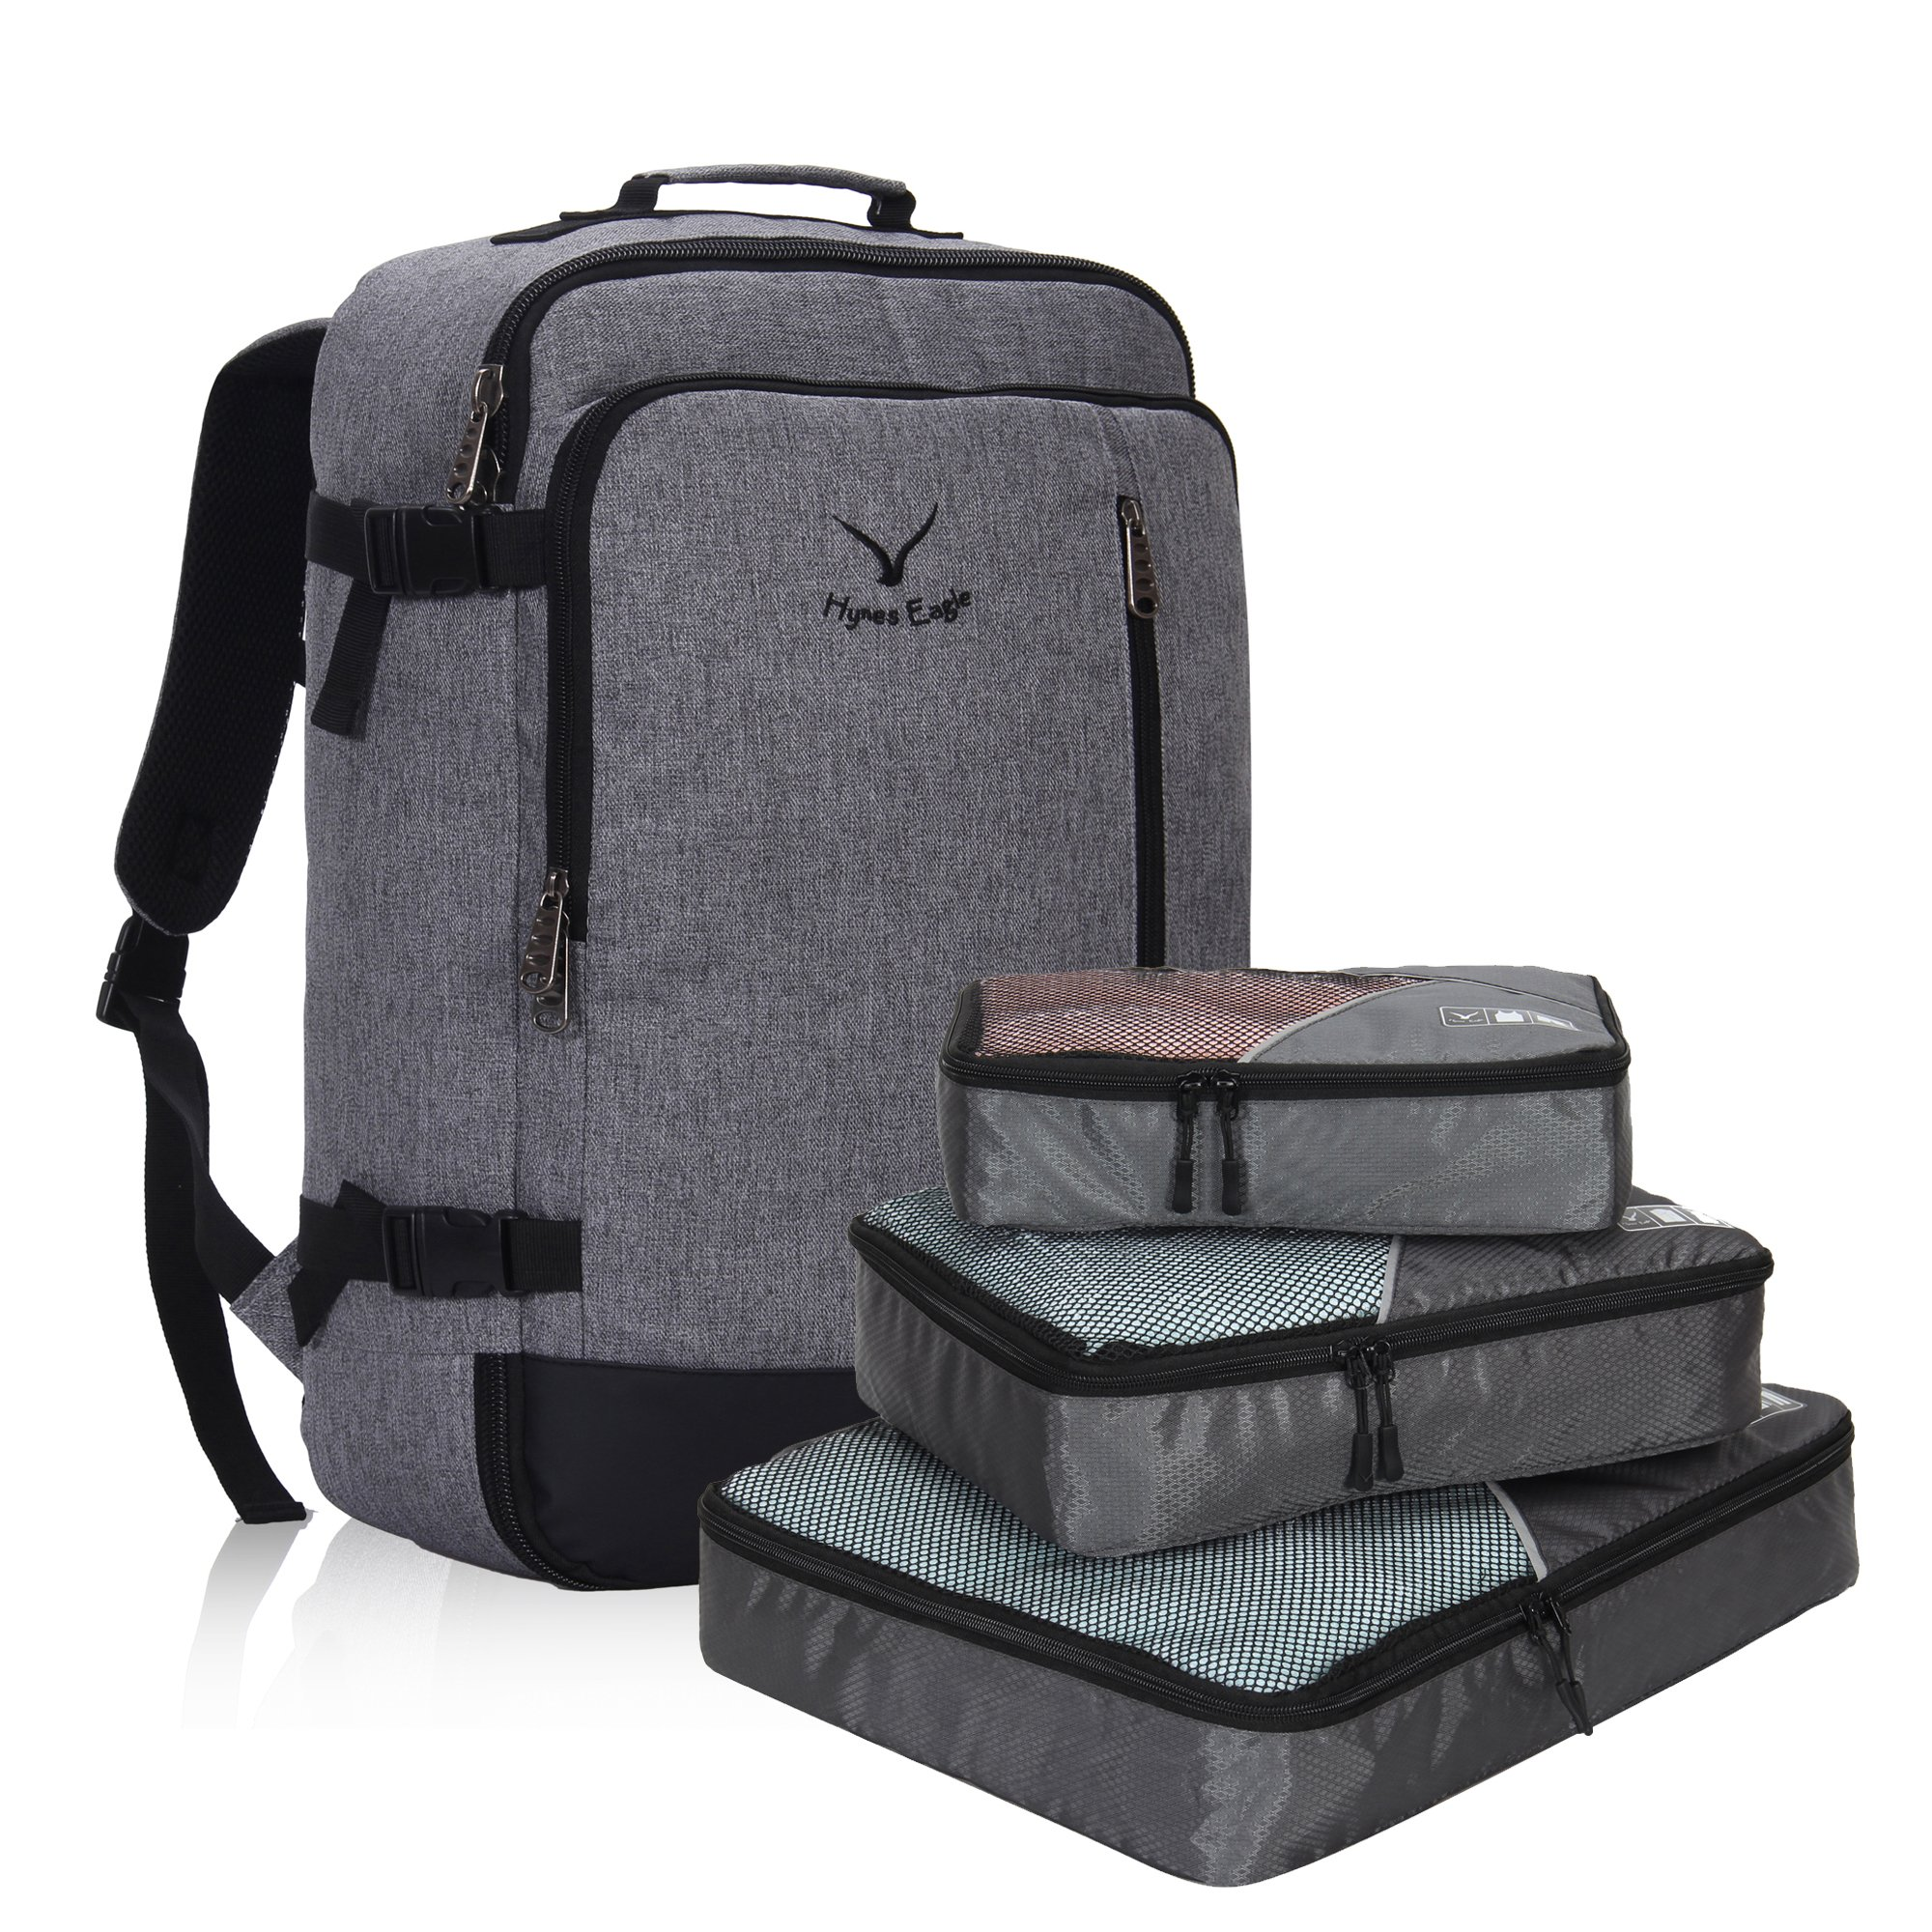 Hynes Eagle 38L Flight Approved Weekender Carry on Backpack Black Grey with Grey 3PCS Packing Cubes by Hynes Eagle